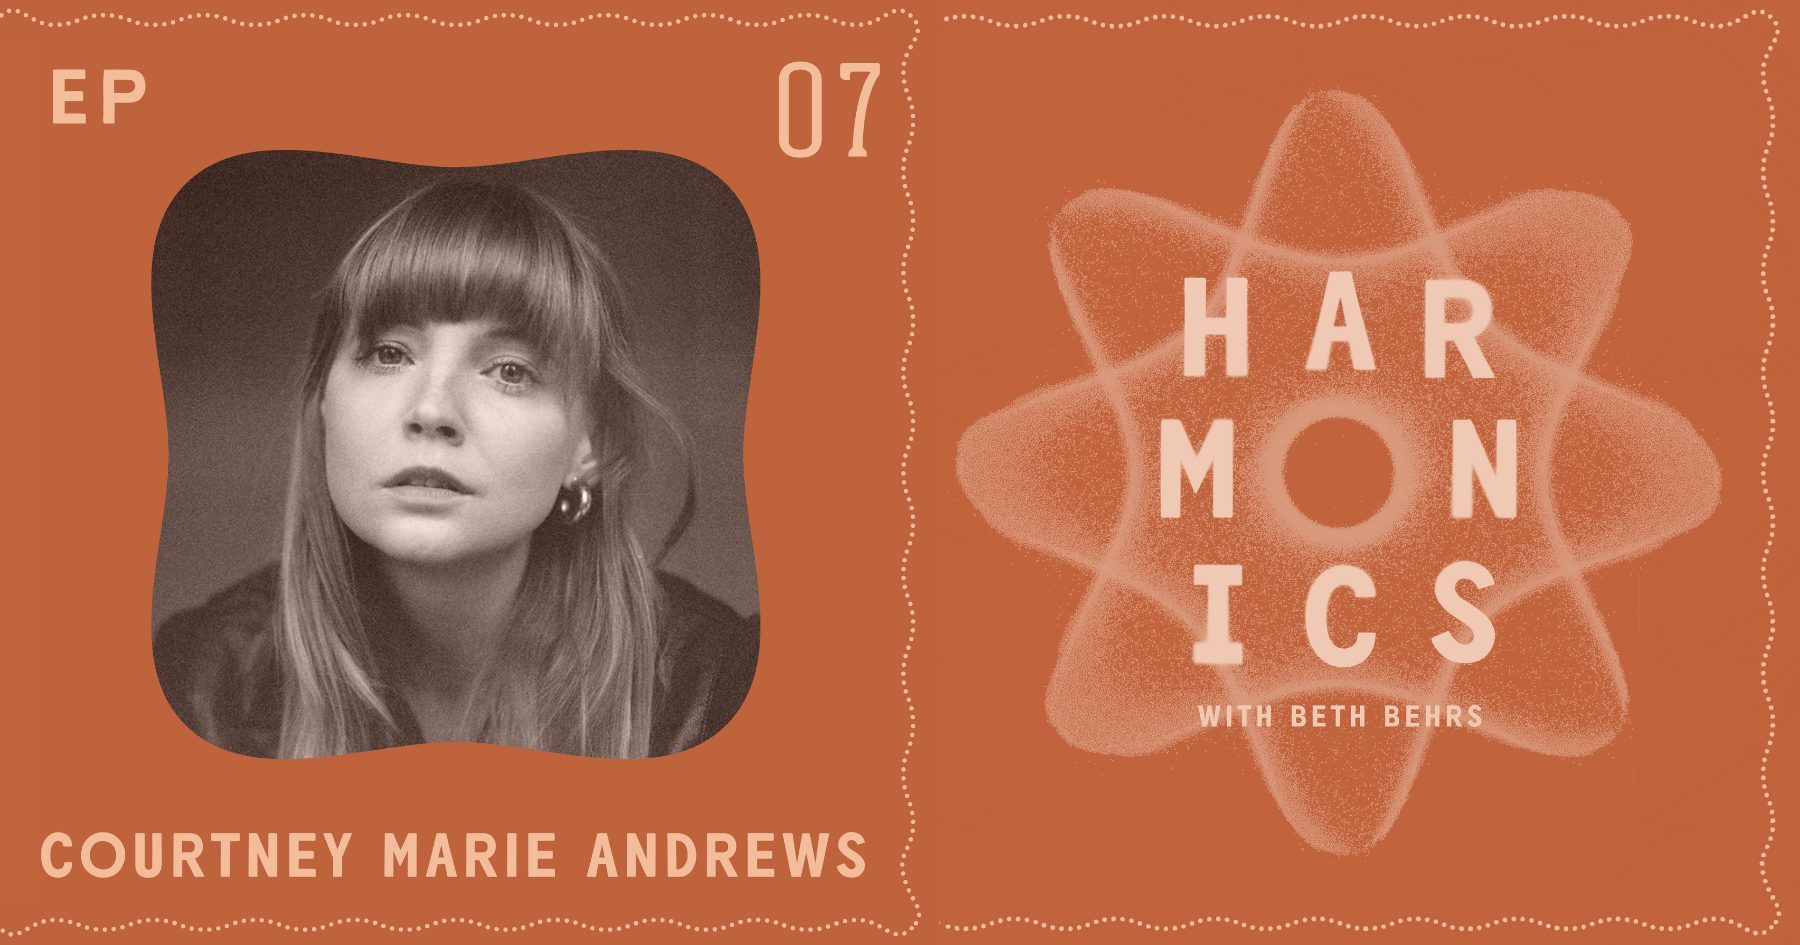 Harmonics with Beth Behrs: Courtney Marie Andrews